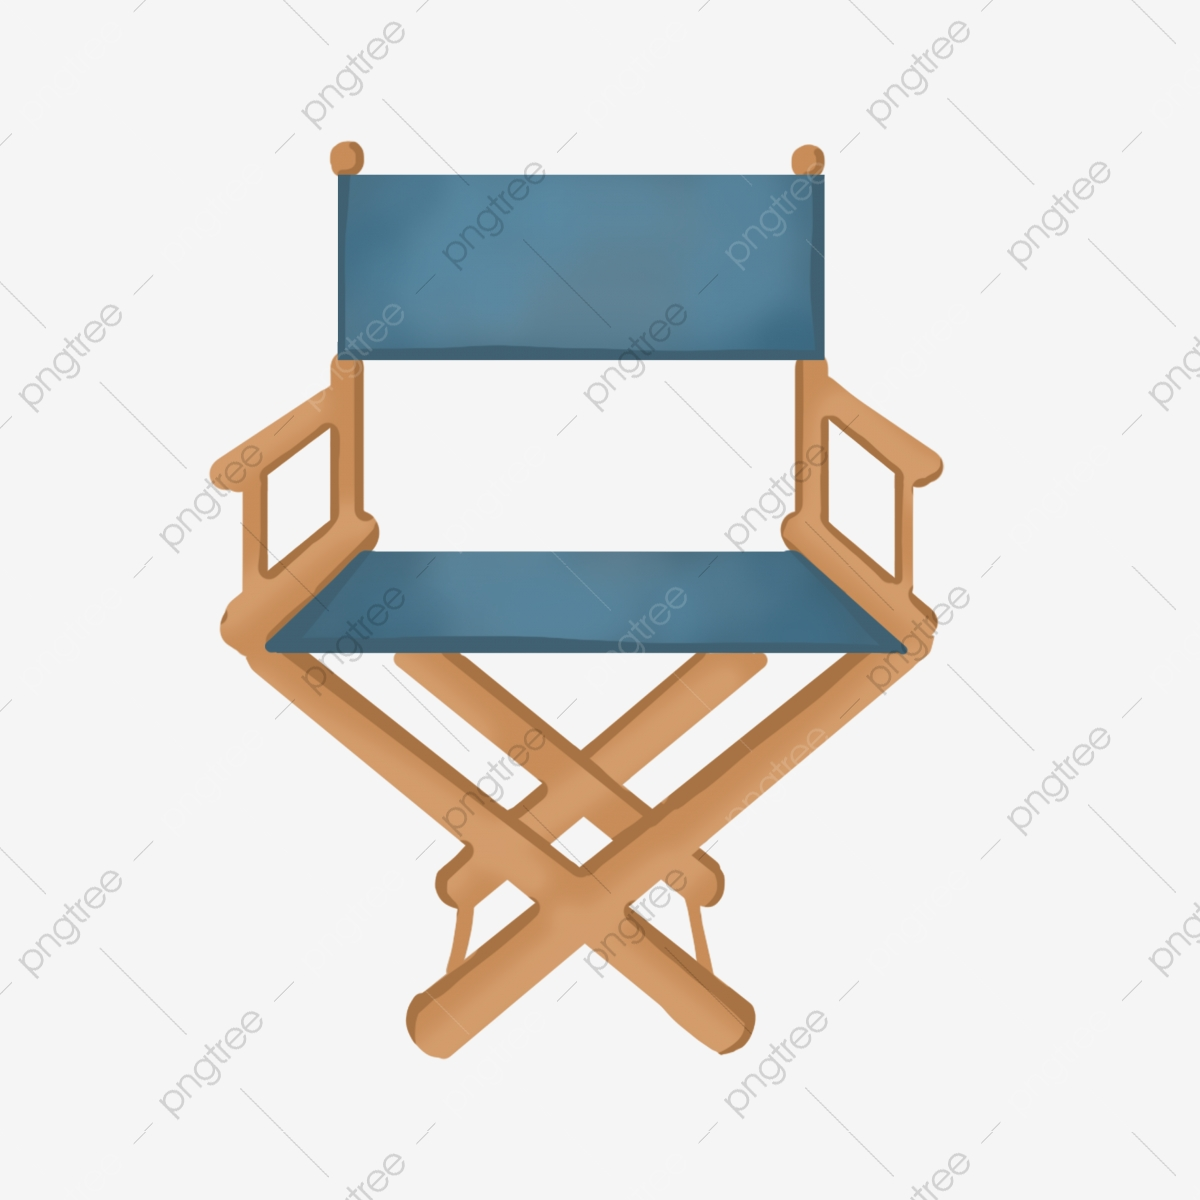 Wooden Movie Chair Illustration, Blue Back, Wooden Seats, Movie Seats PNG  Transparent Clipart Image and PSD File for Free Download